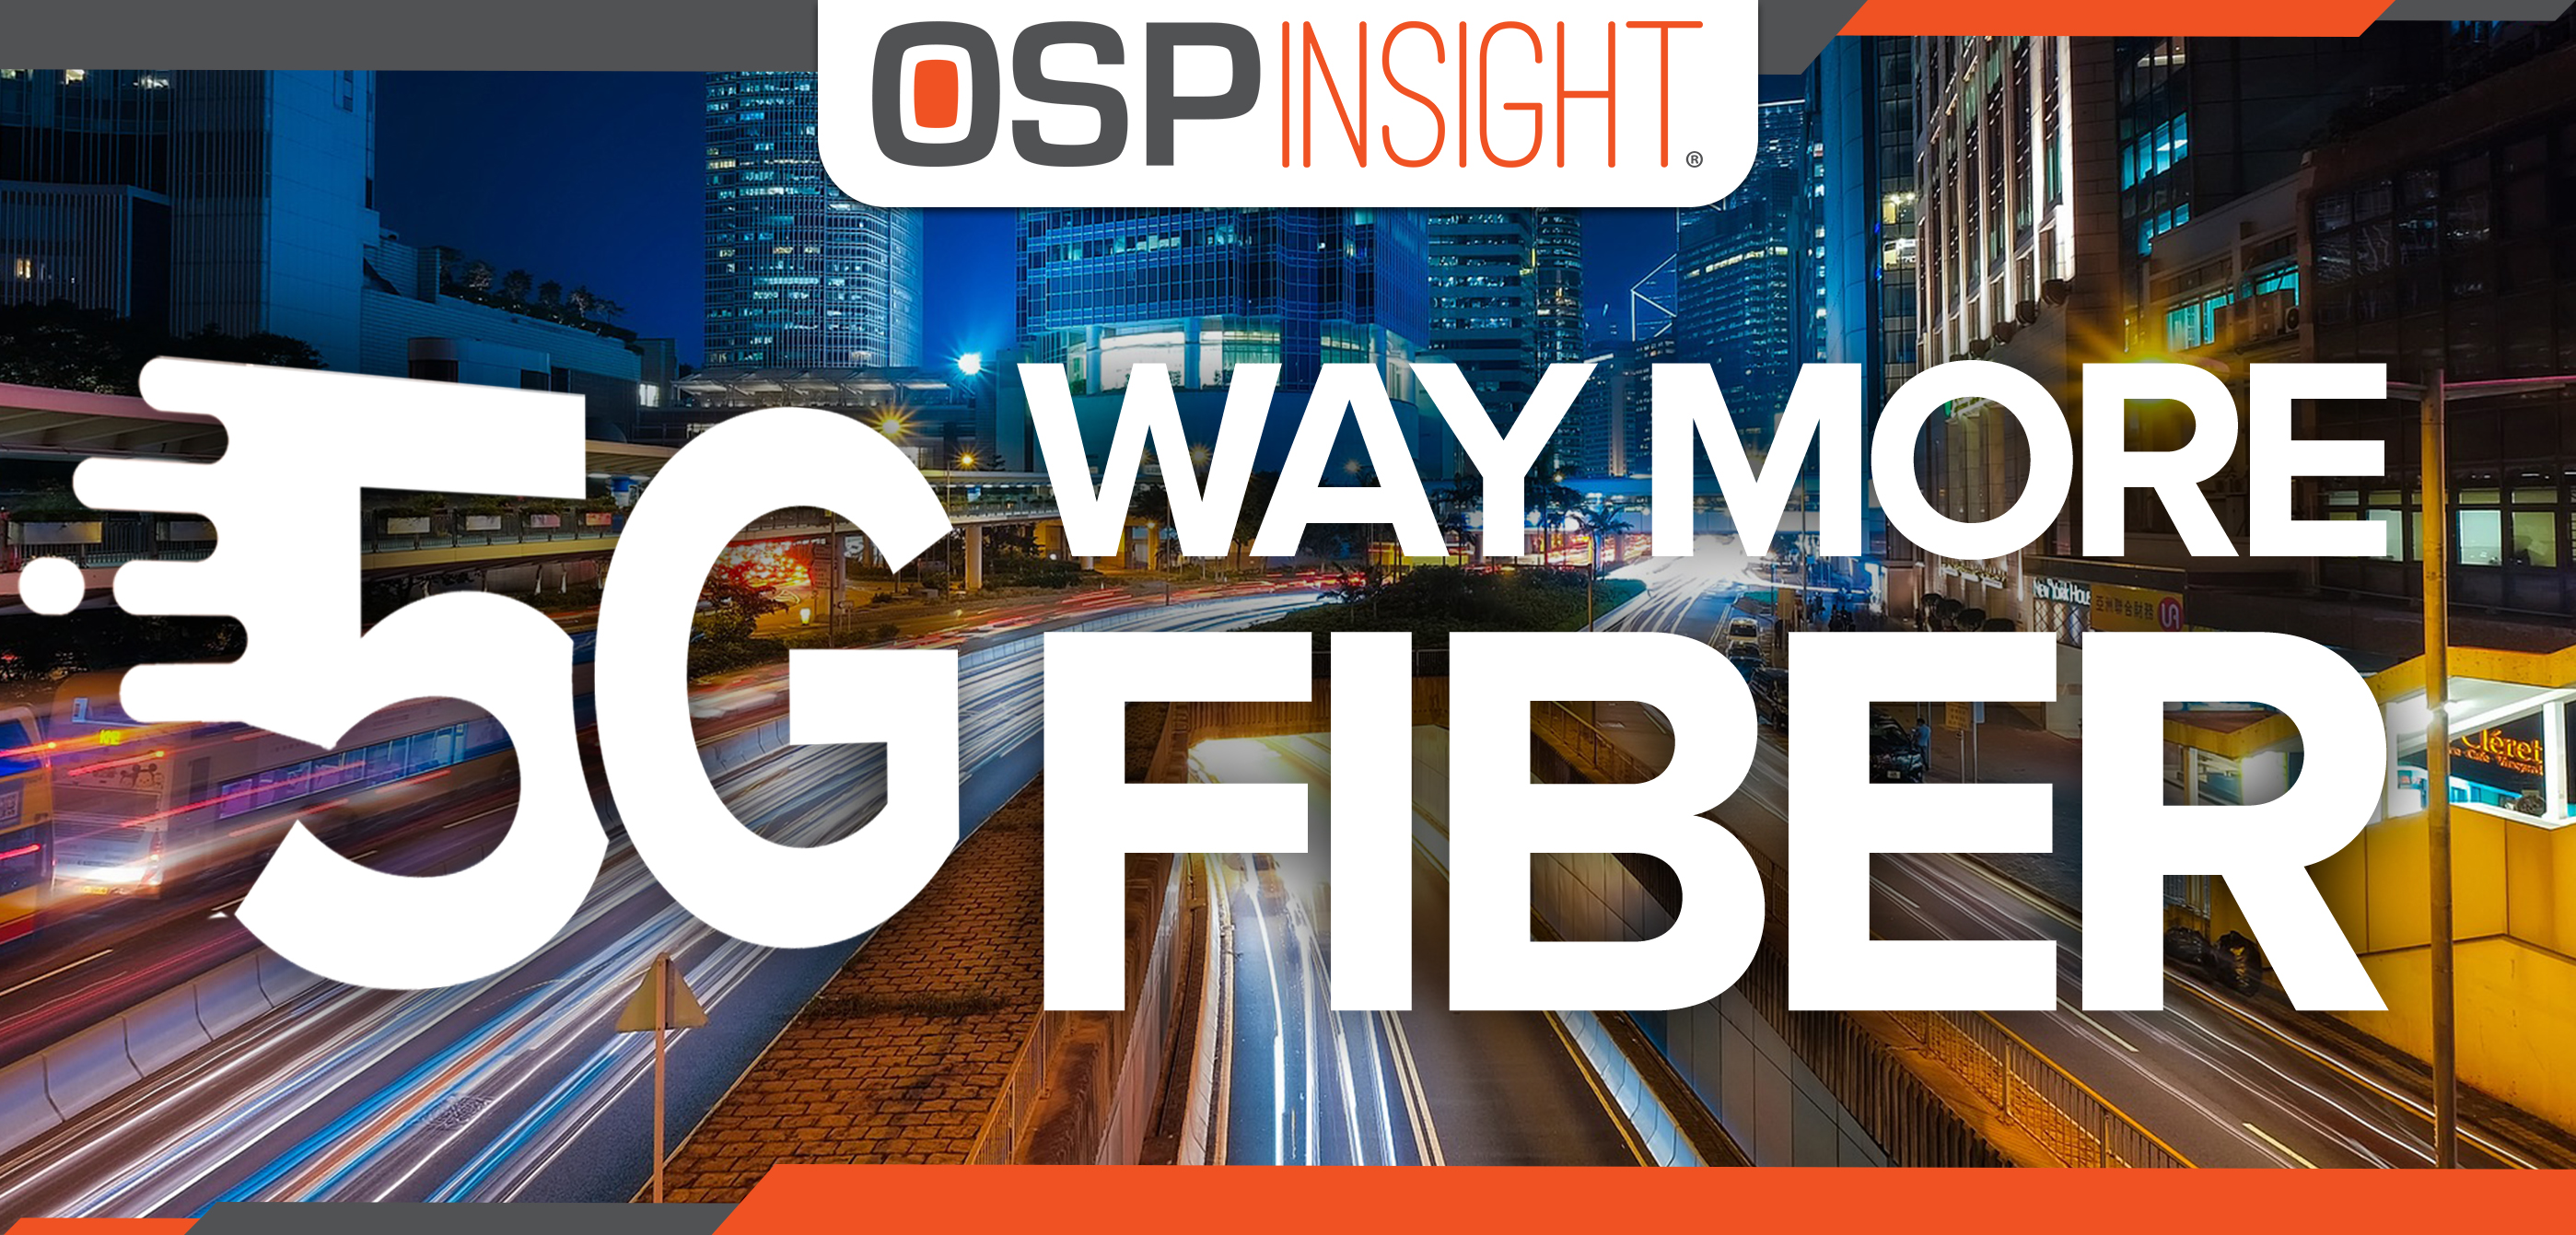 5G - Way More Fiber (featured image)-1